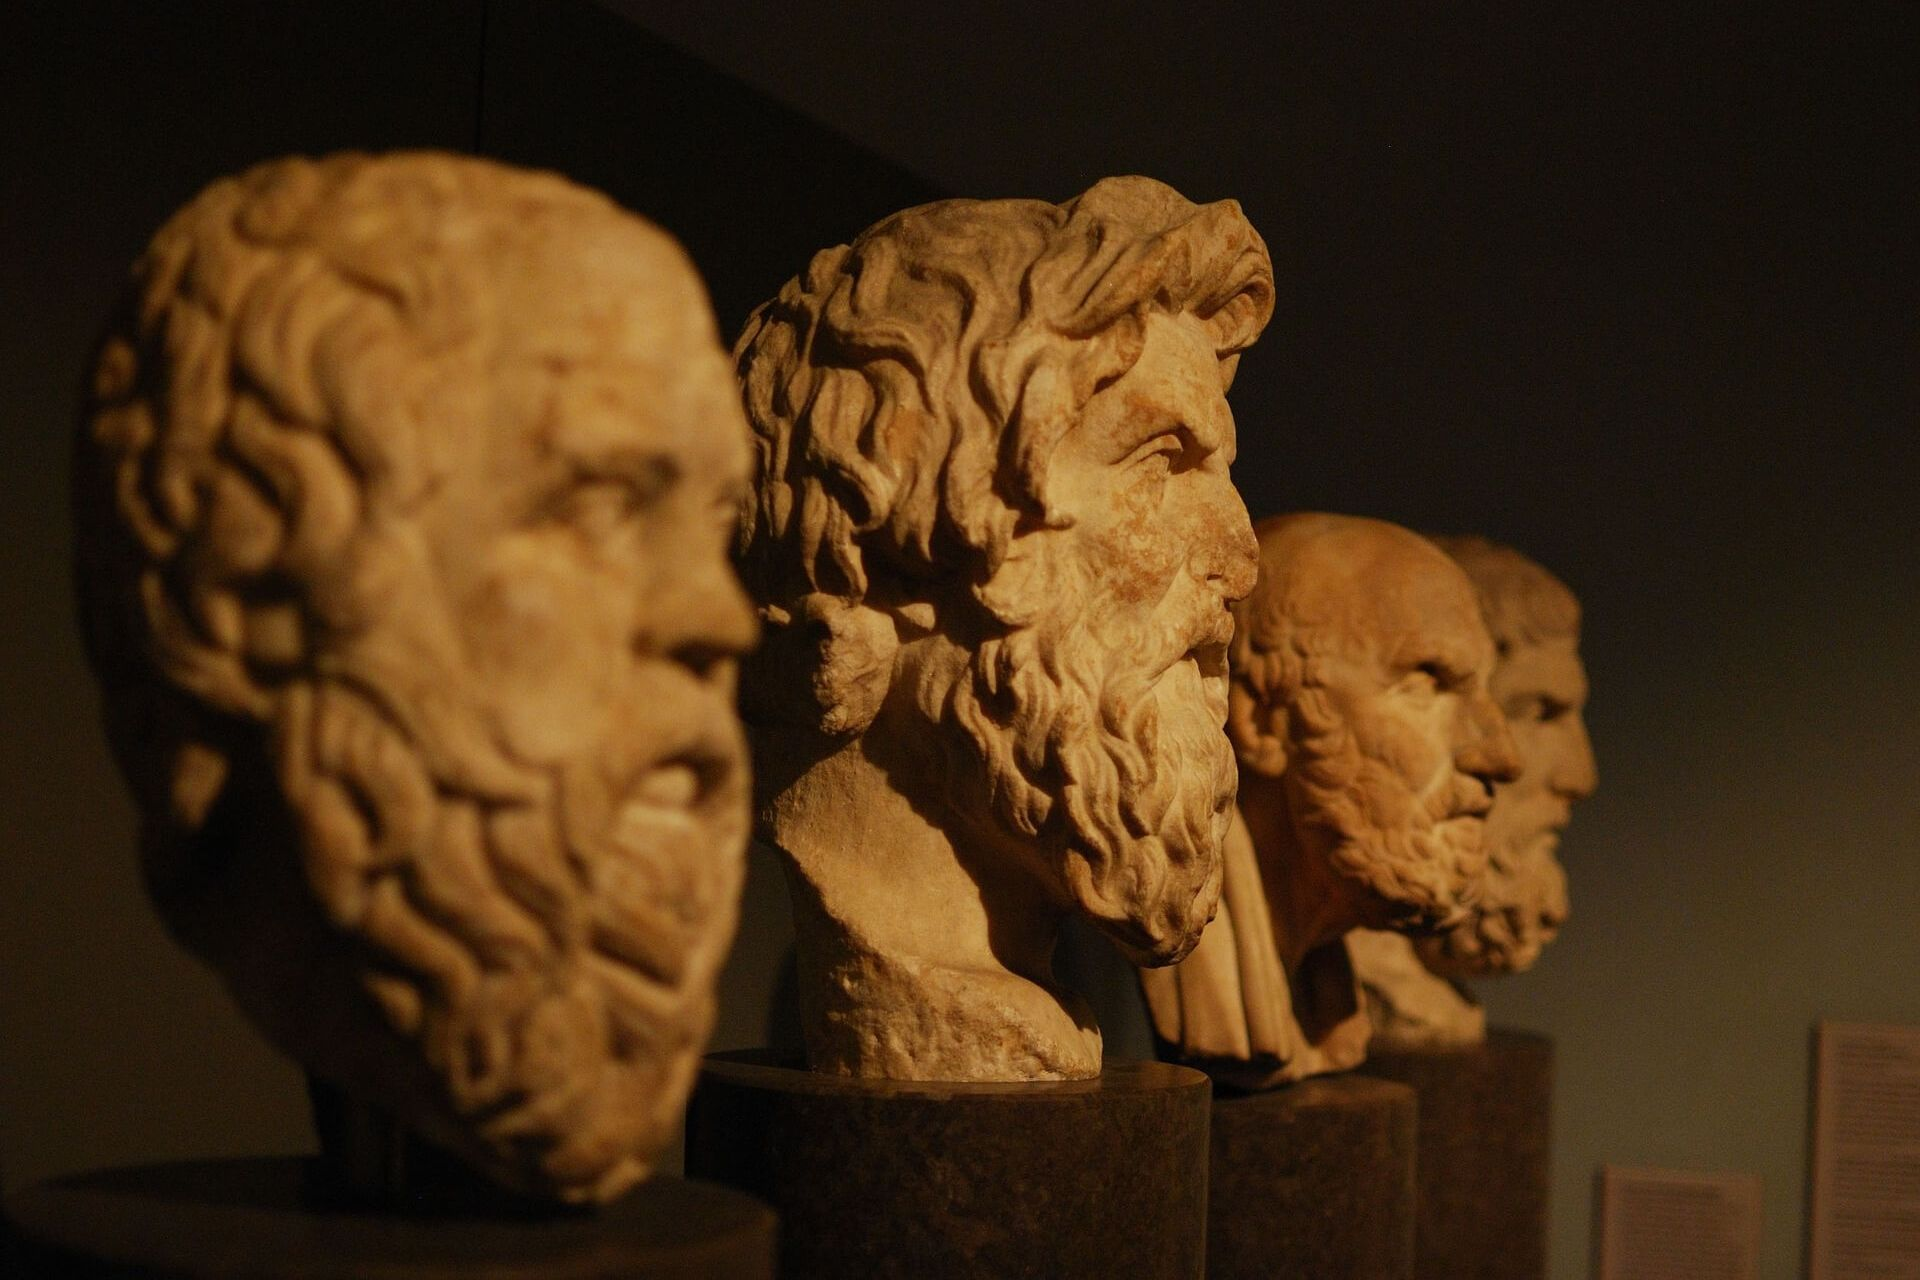 Argue with your friends on ancient debates